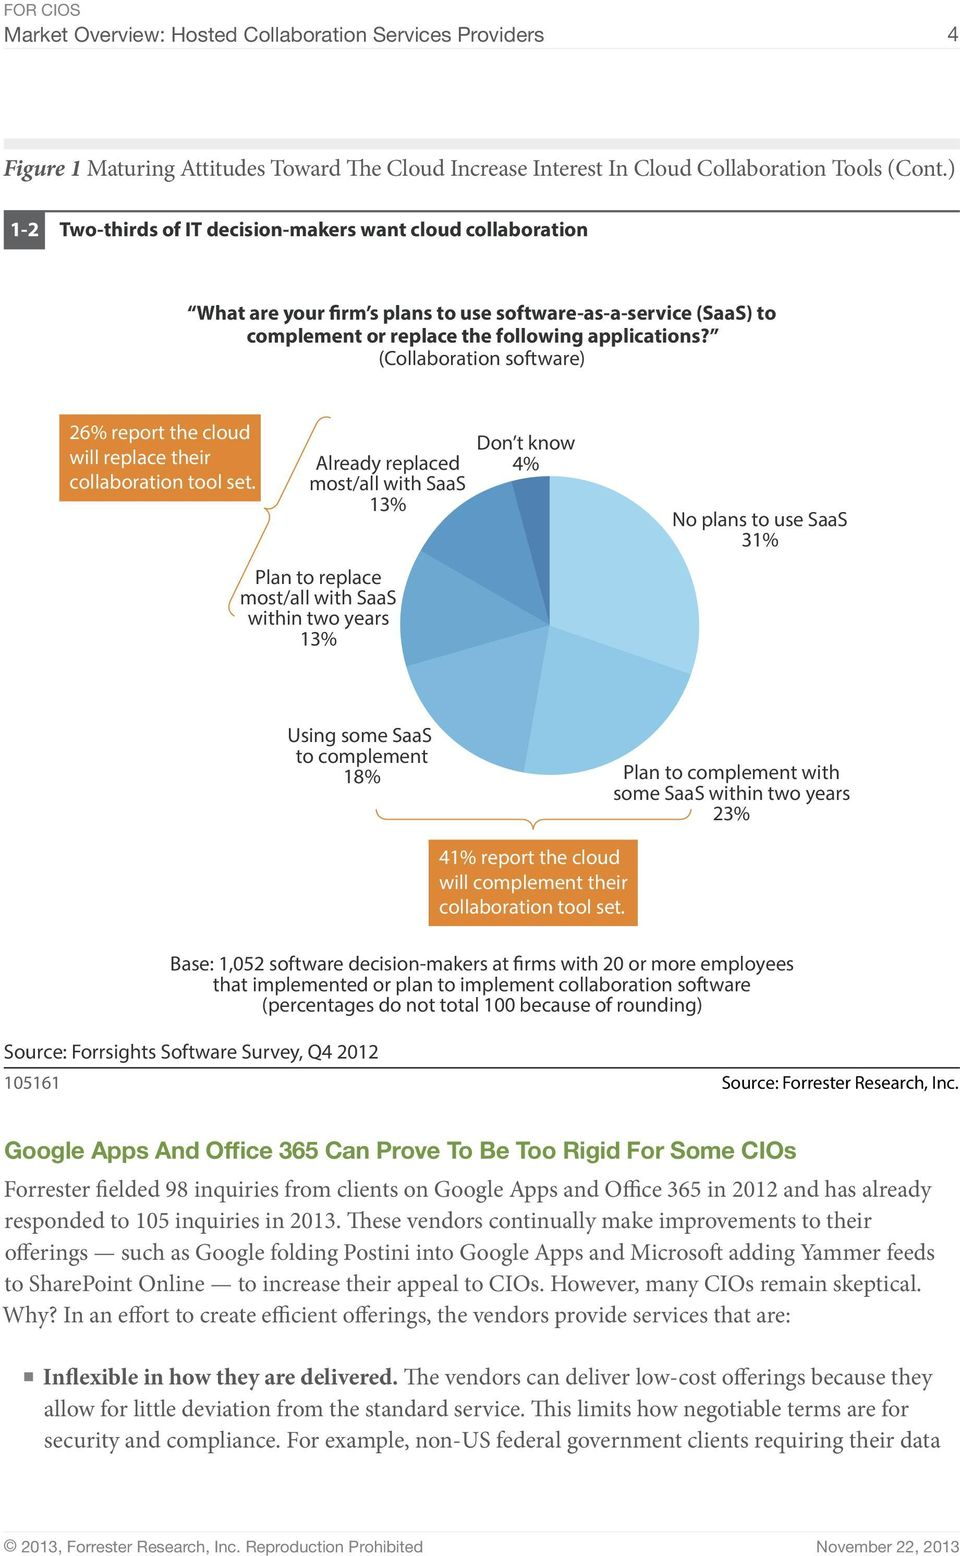 (Collaboration software) 26% report the cloud will replace their collaboration tool set.